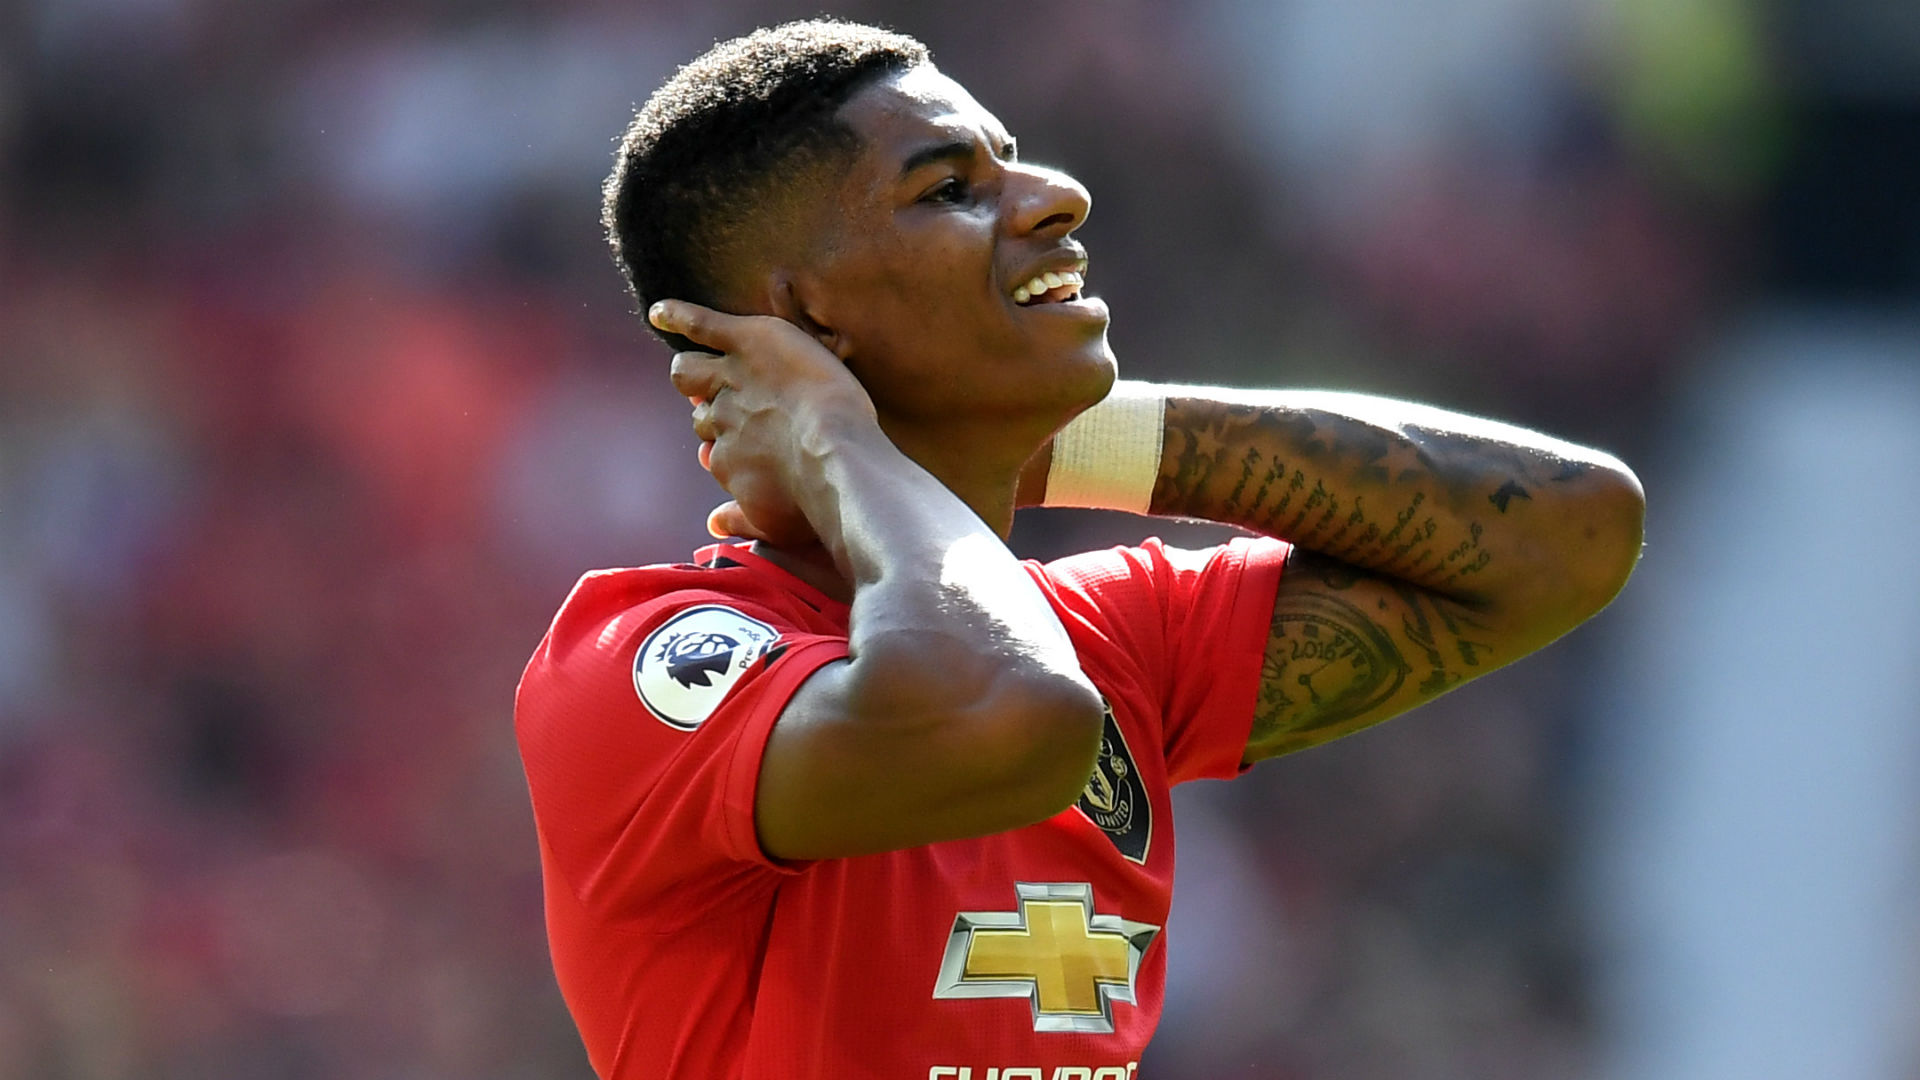 Manchester United chute face à Crystal Palace - Angleterre - Etranger